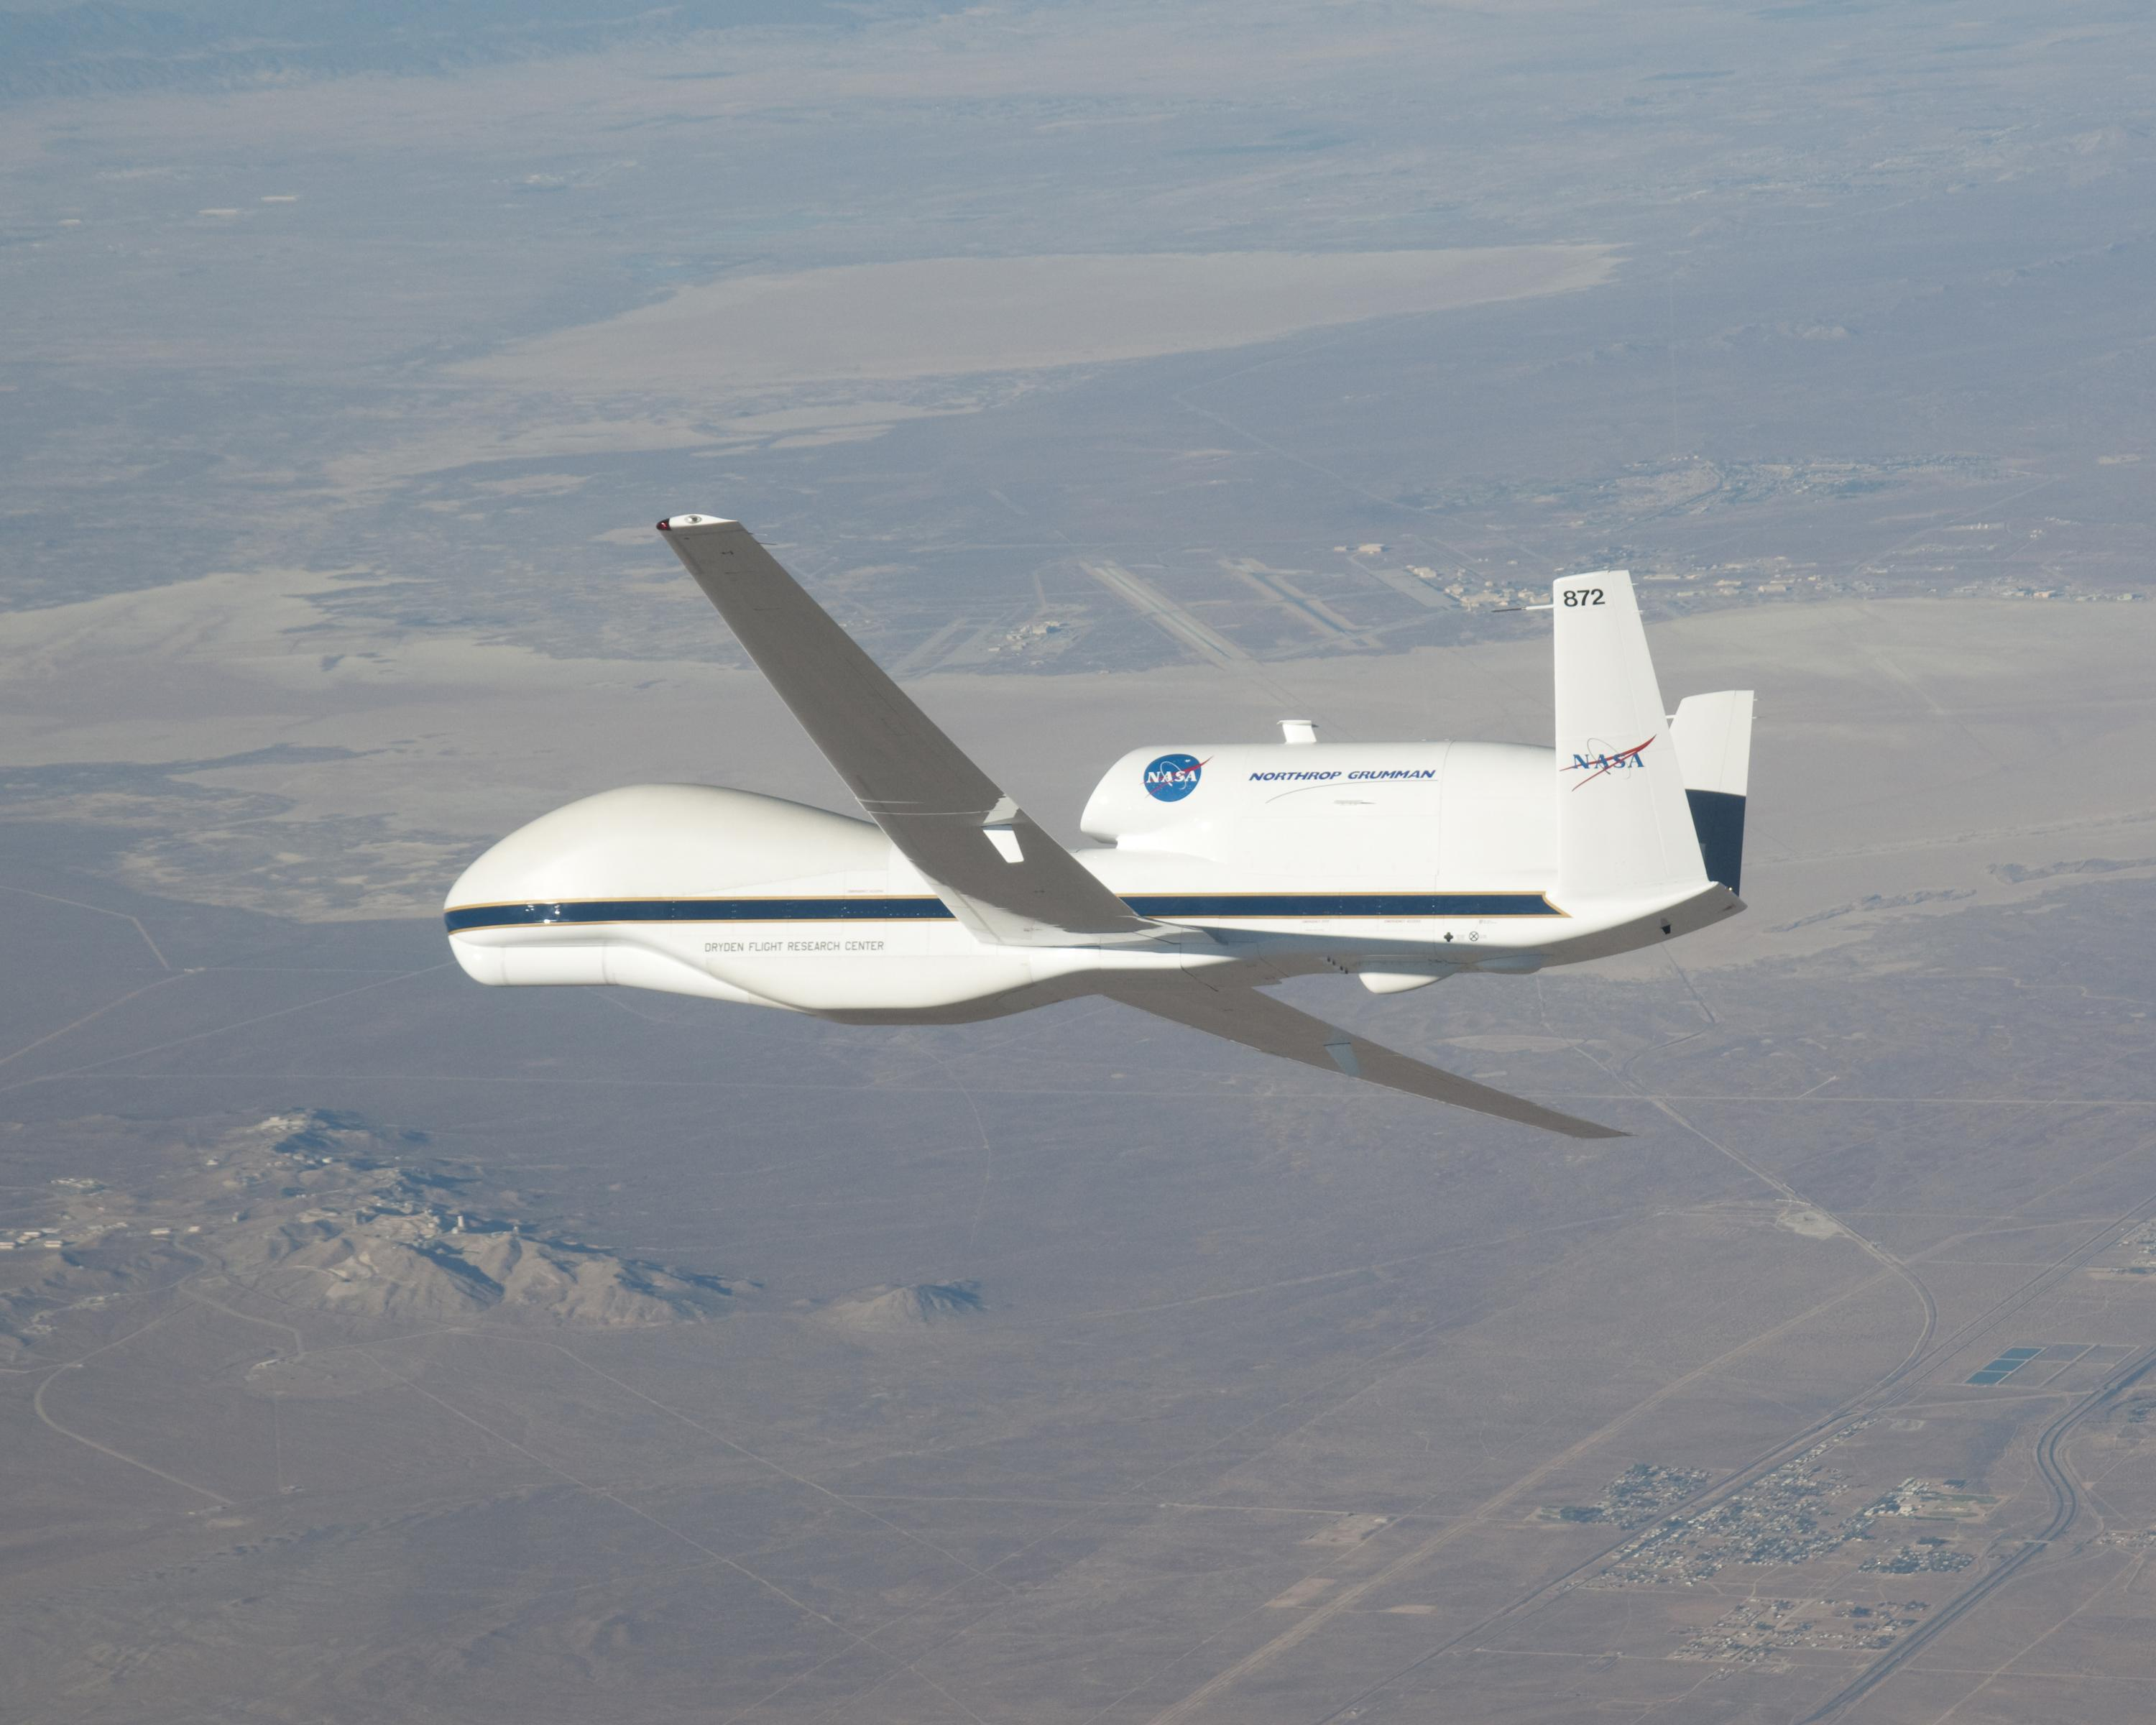 NASA's Global Hawk autonomous plane